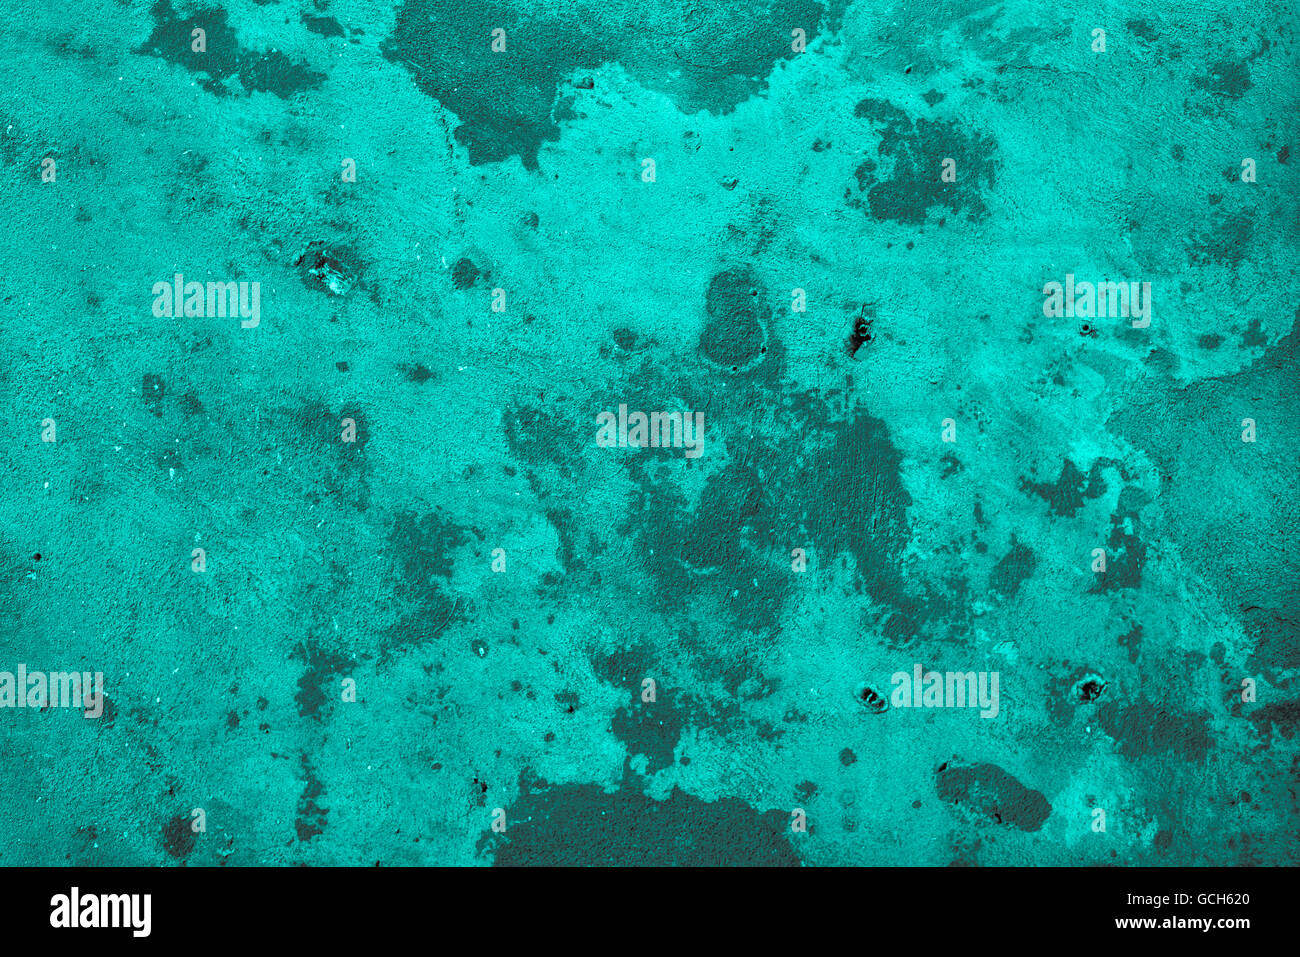 Excellent turquoise grayish gray scale stone wall backgrounds: trashy with drill holes Stock Photo